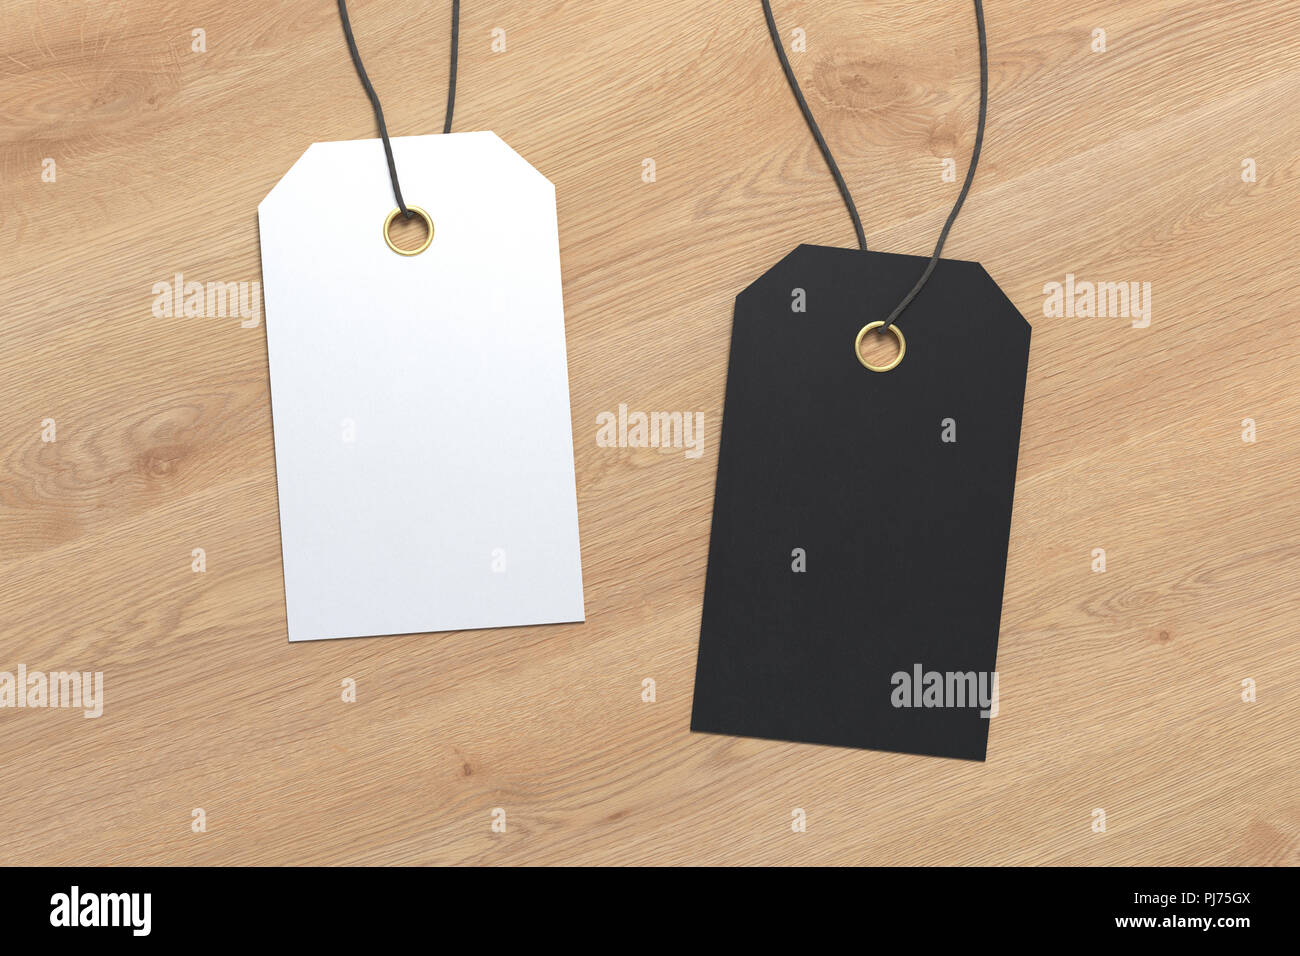 two blank black and white price tag labesl mockup on wooden